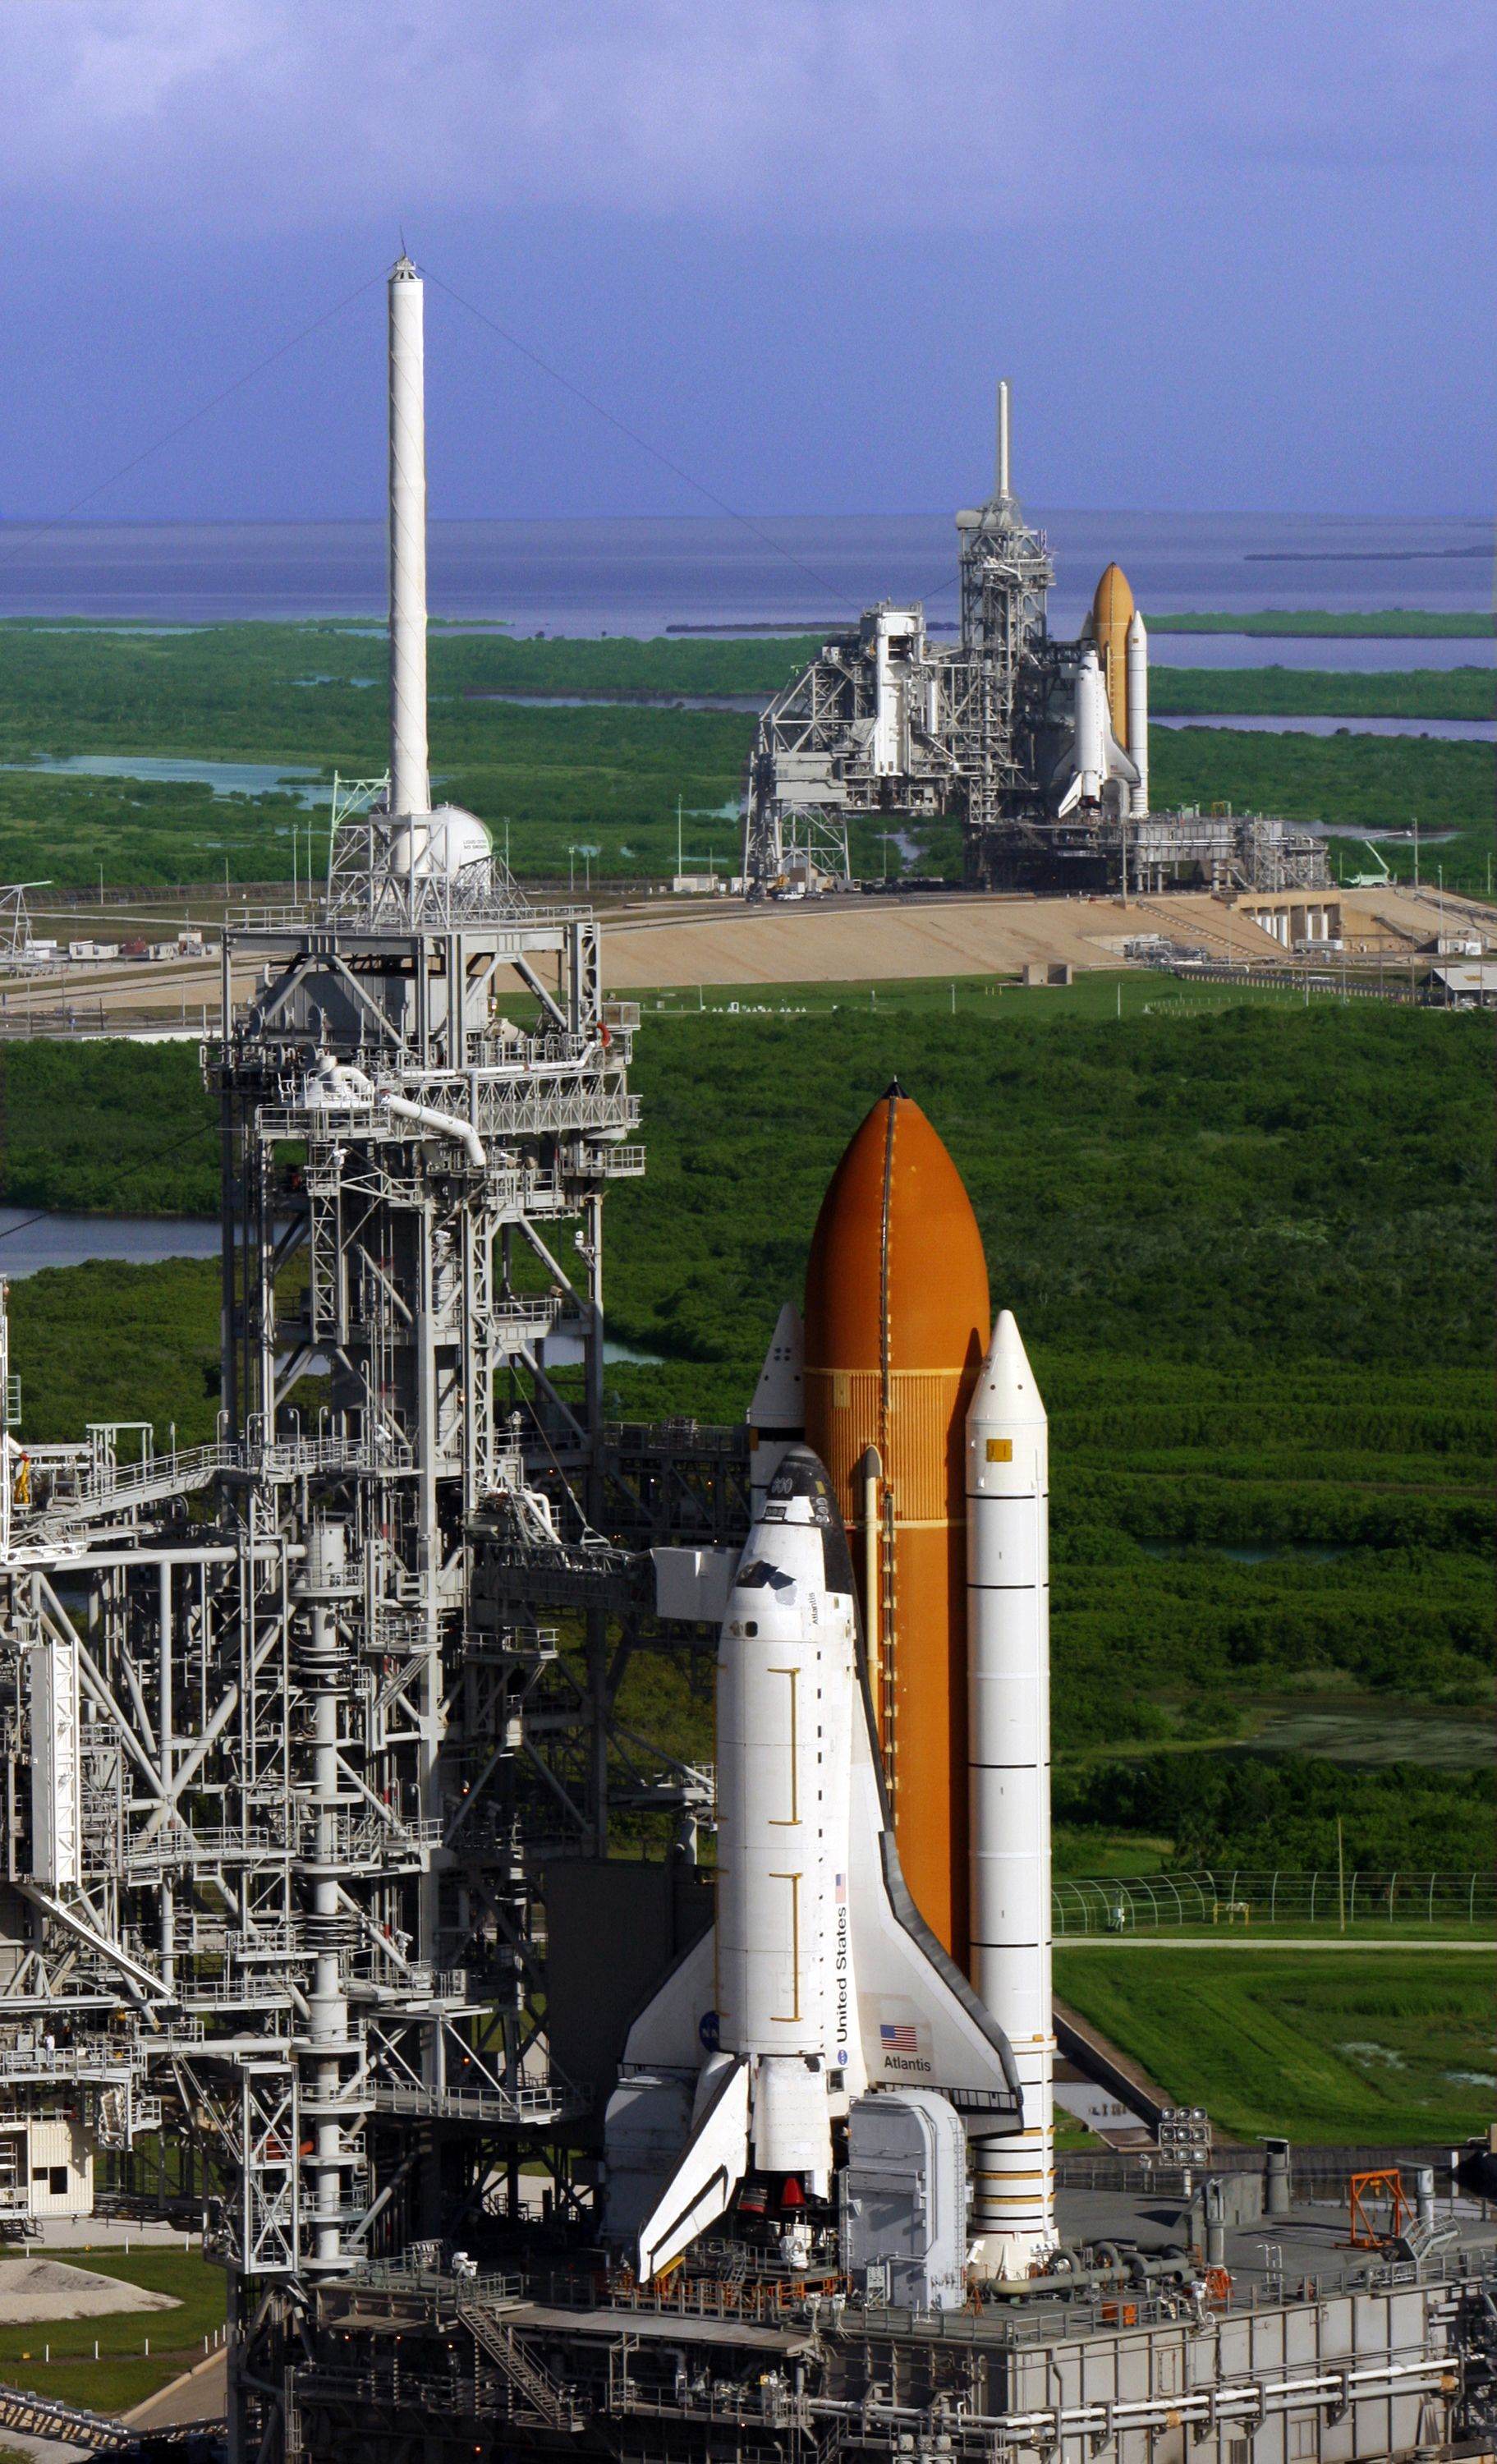 space shuttle atlantis in the front row kennedy space center in